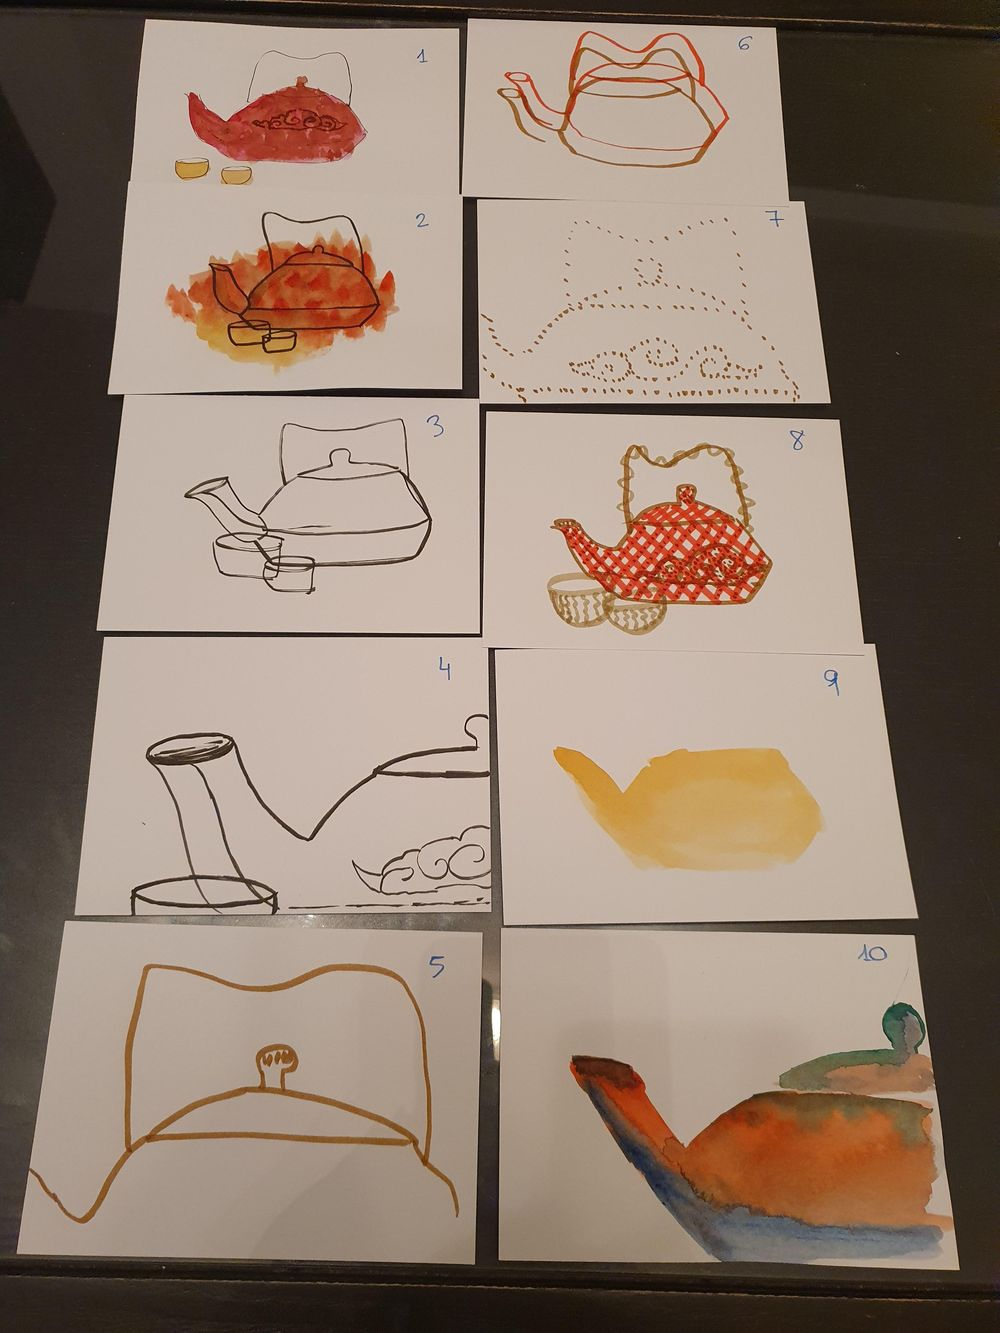 Teapot - image 1 - student project